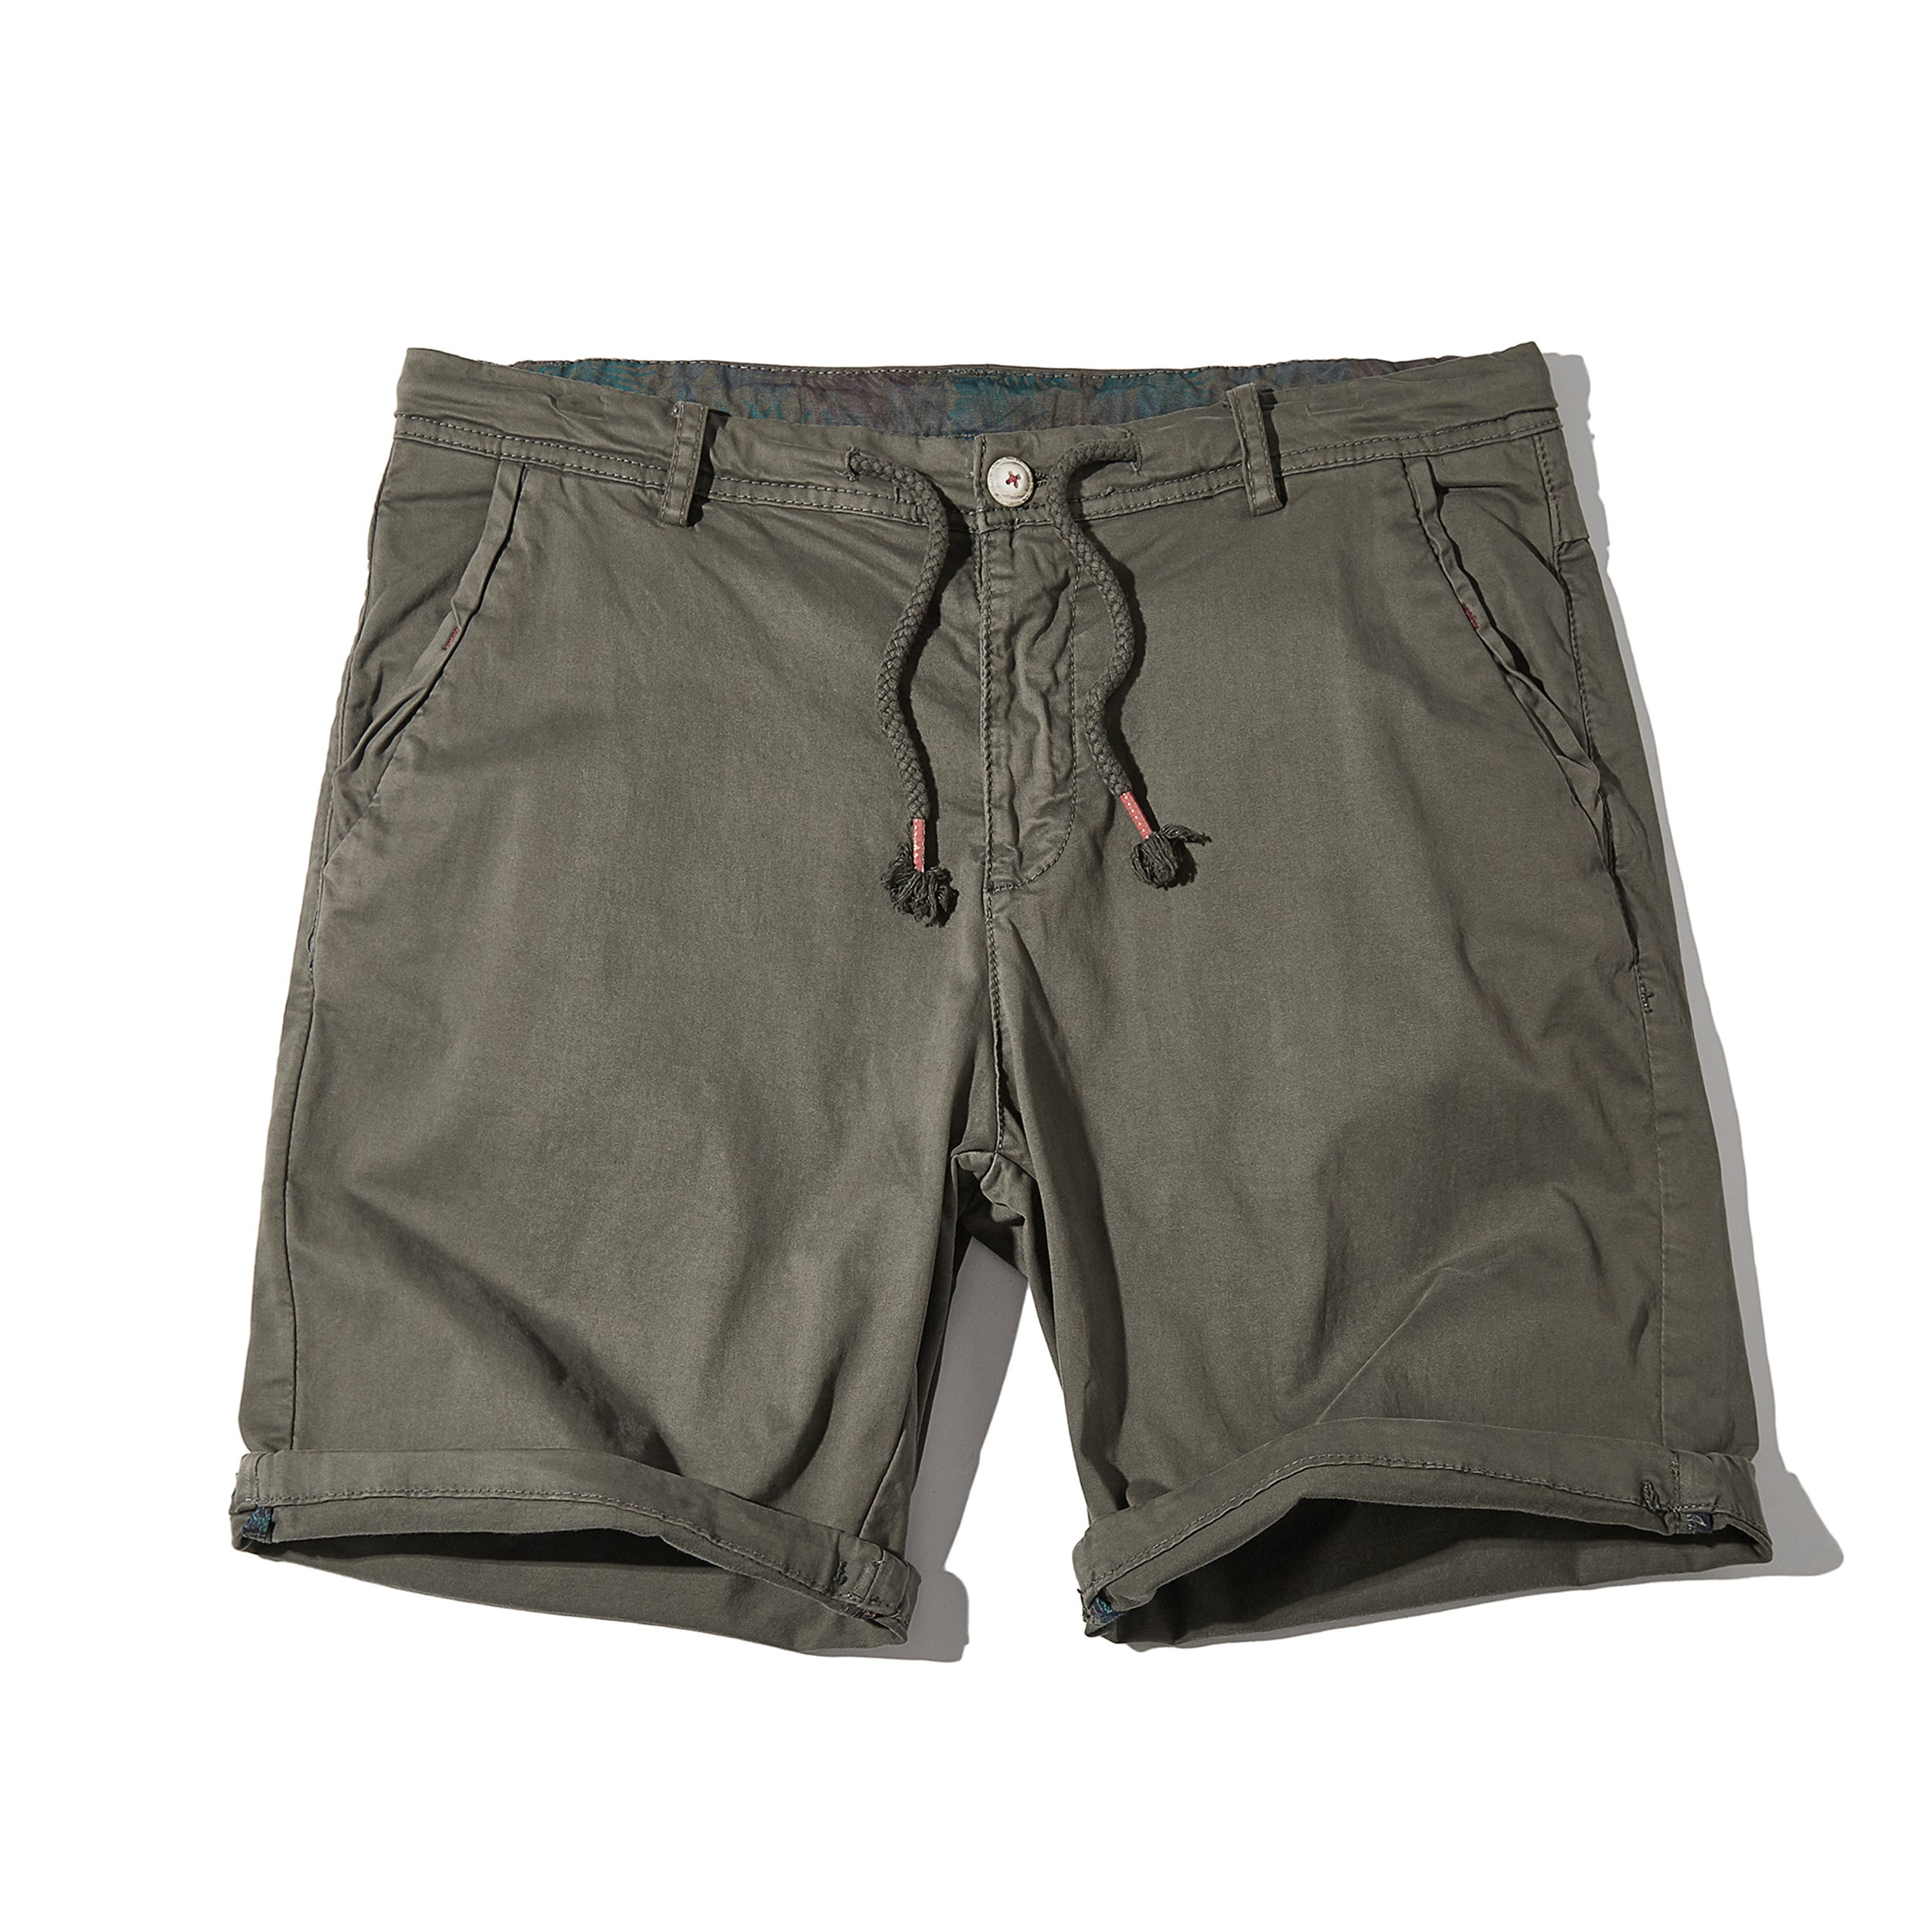 Granfee Men's Summer Casual Cotton Shorts with Pockets(DK829Grey36)